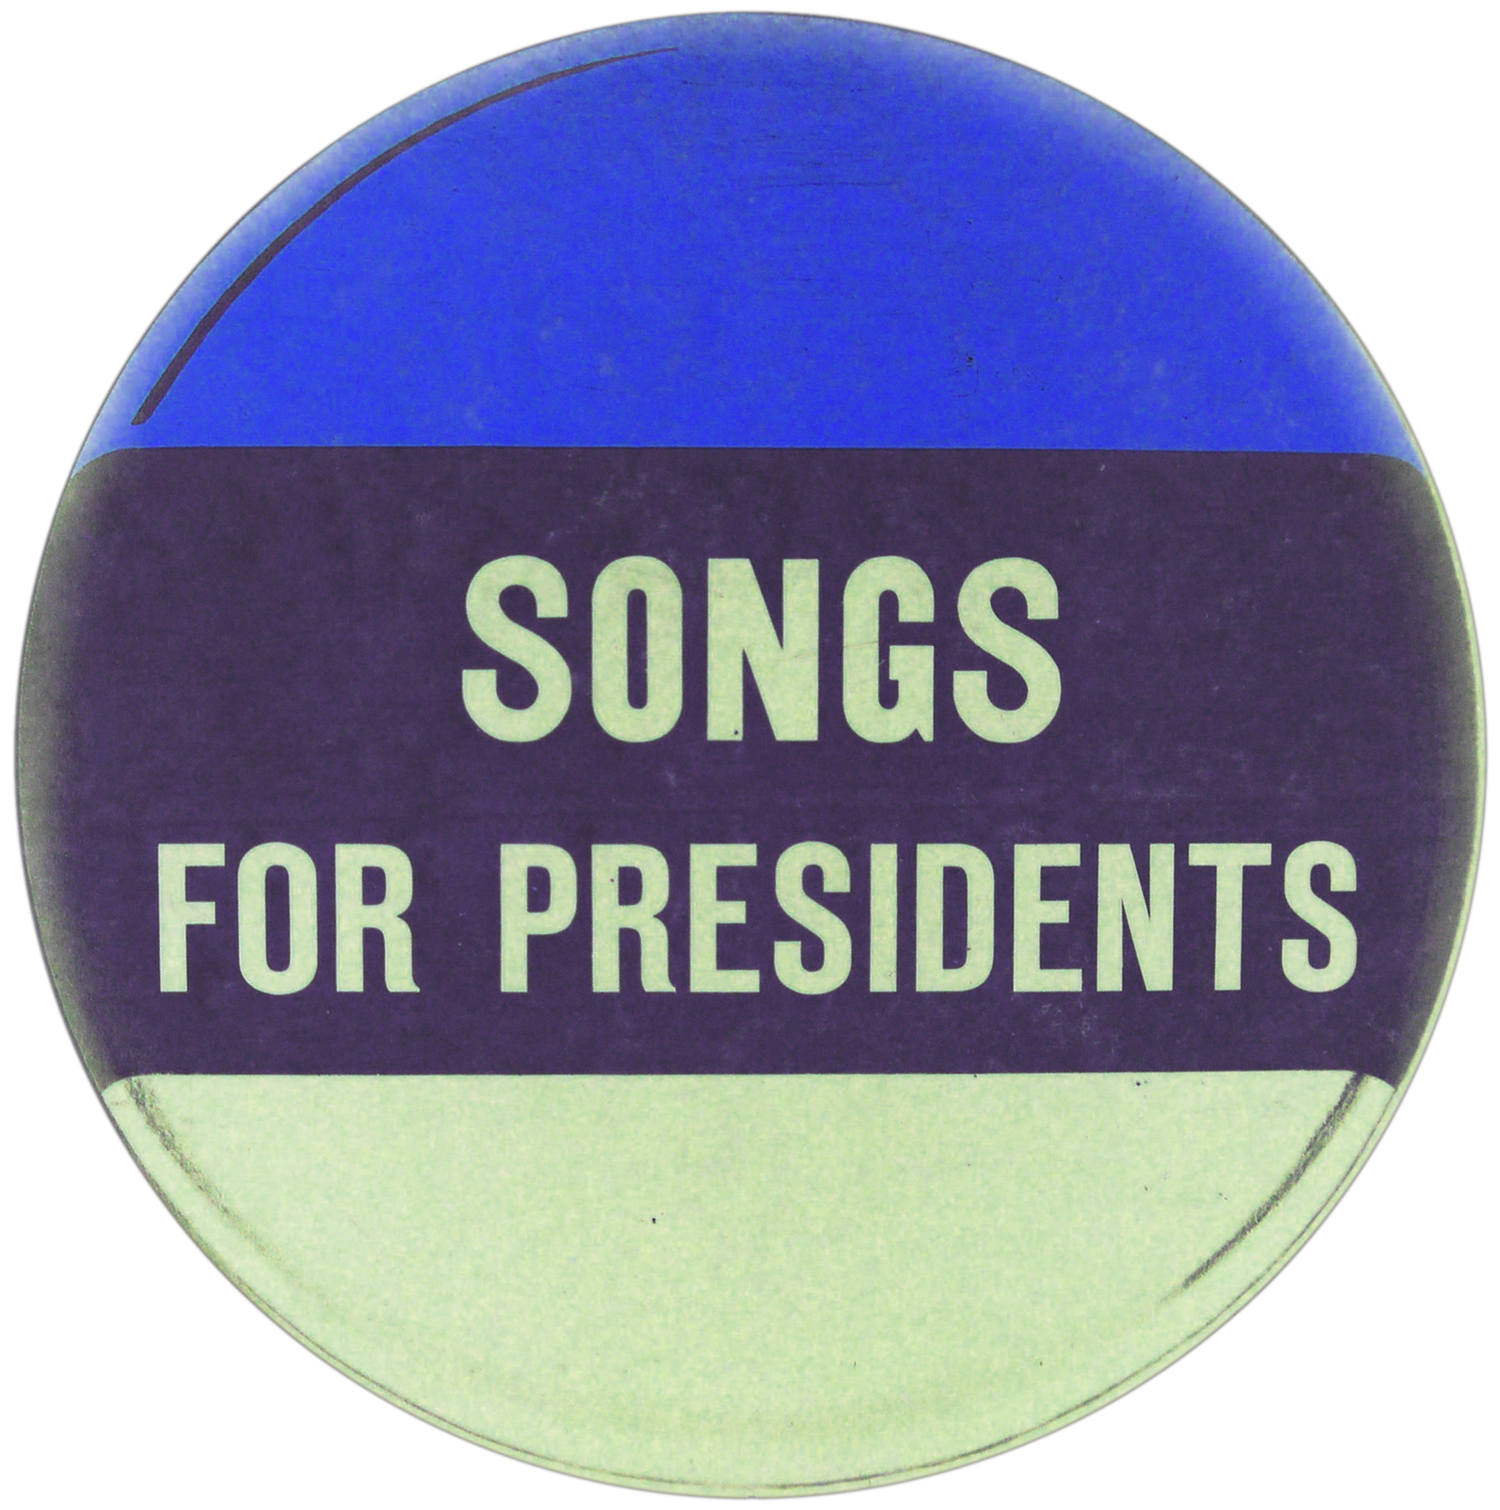 Songs for Presidents